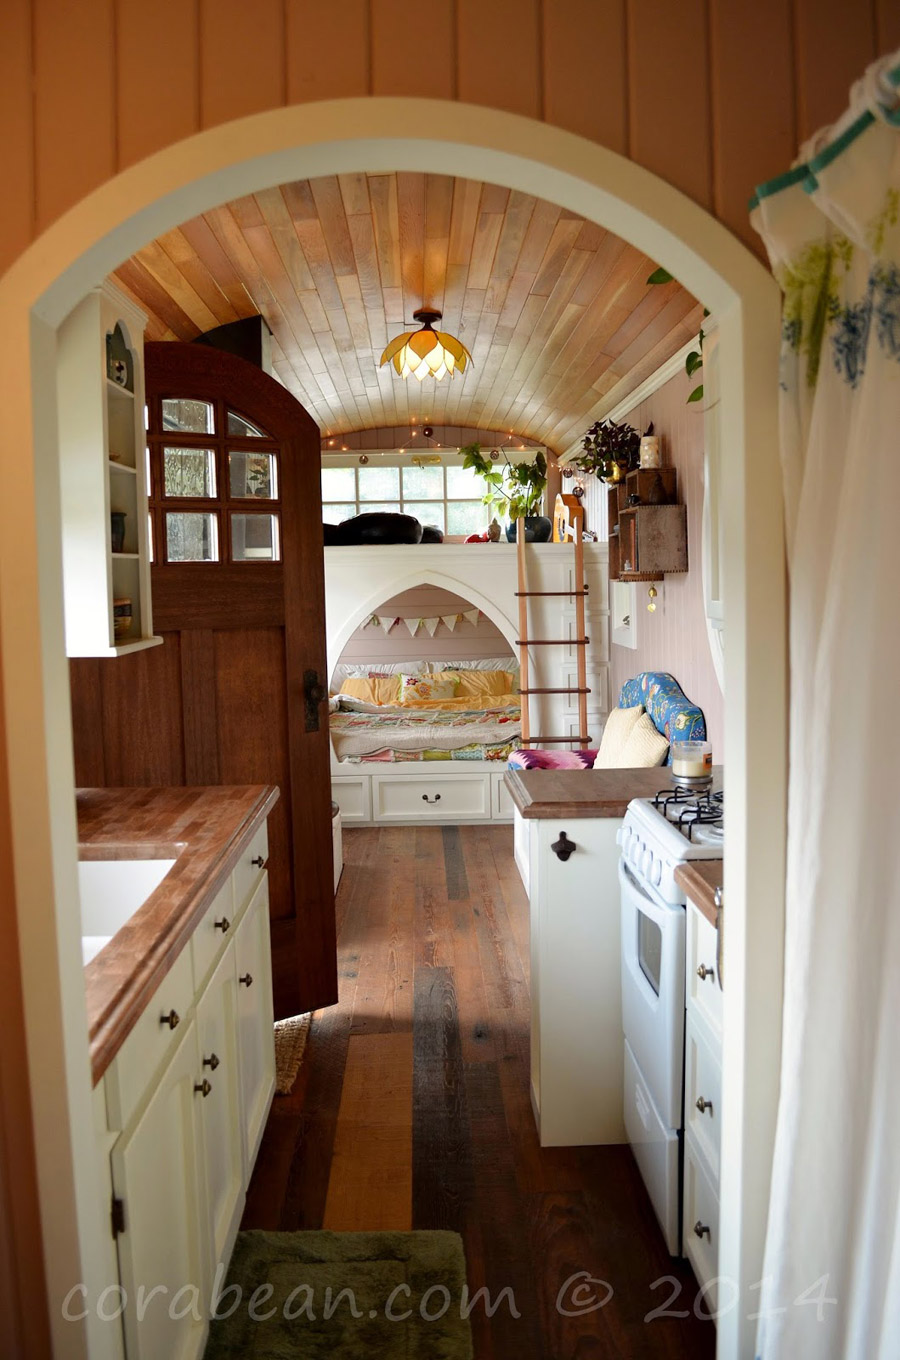 House Bus Tiny House Swoon